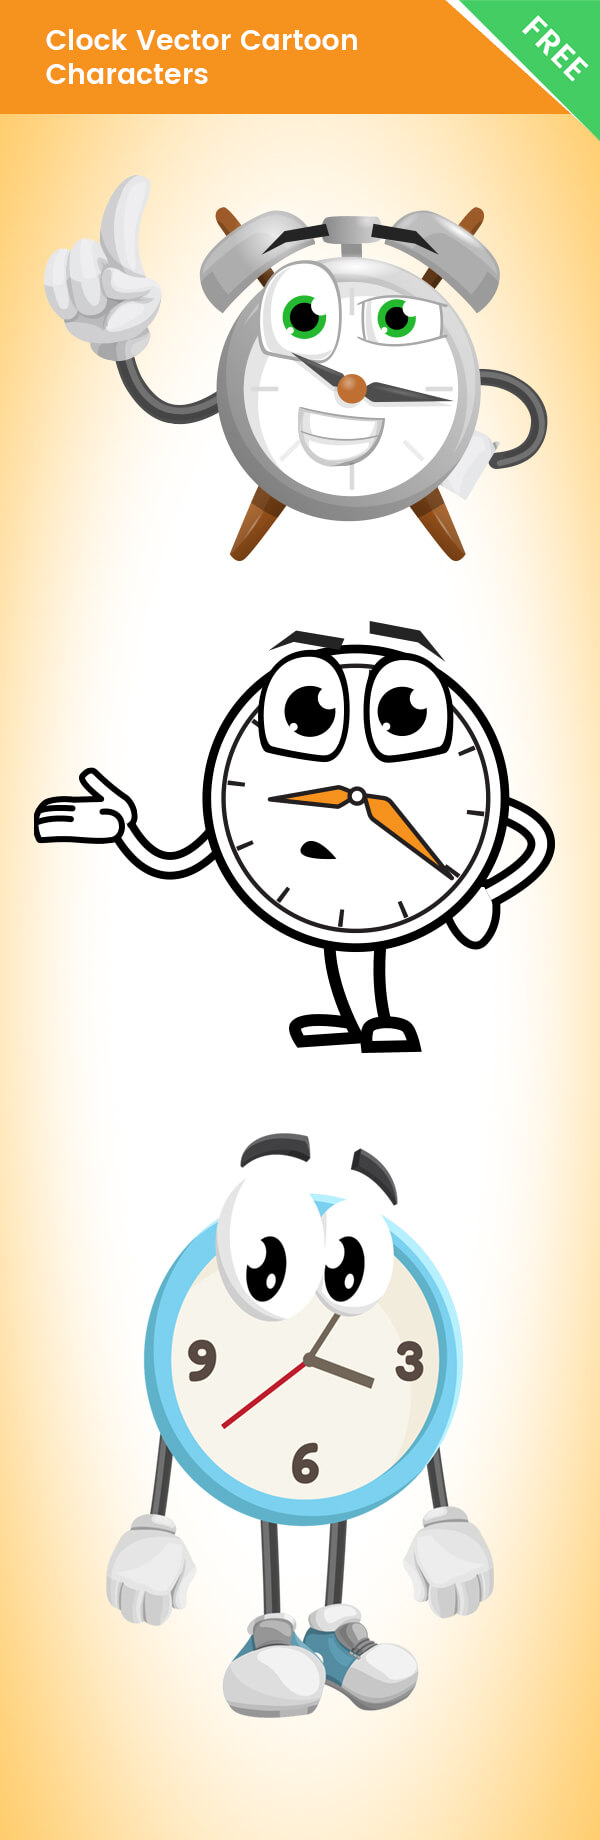 Clock Vector Cartoon Characters - Free Collection